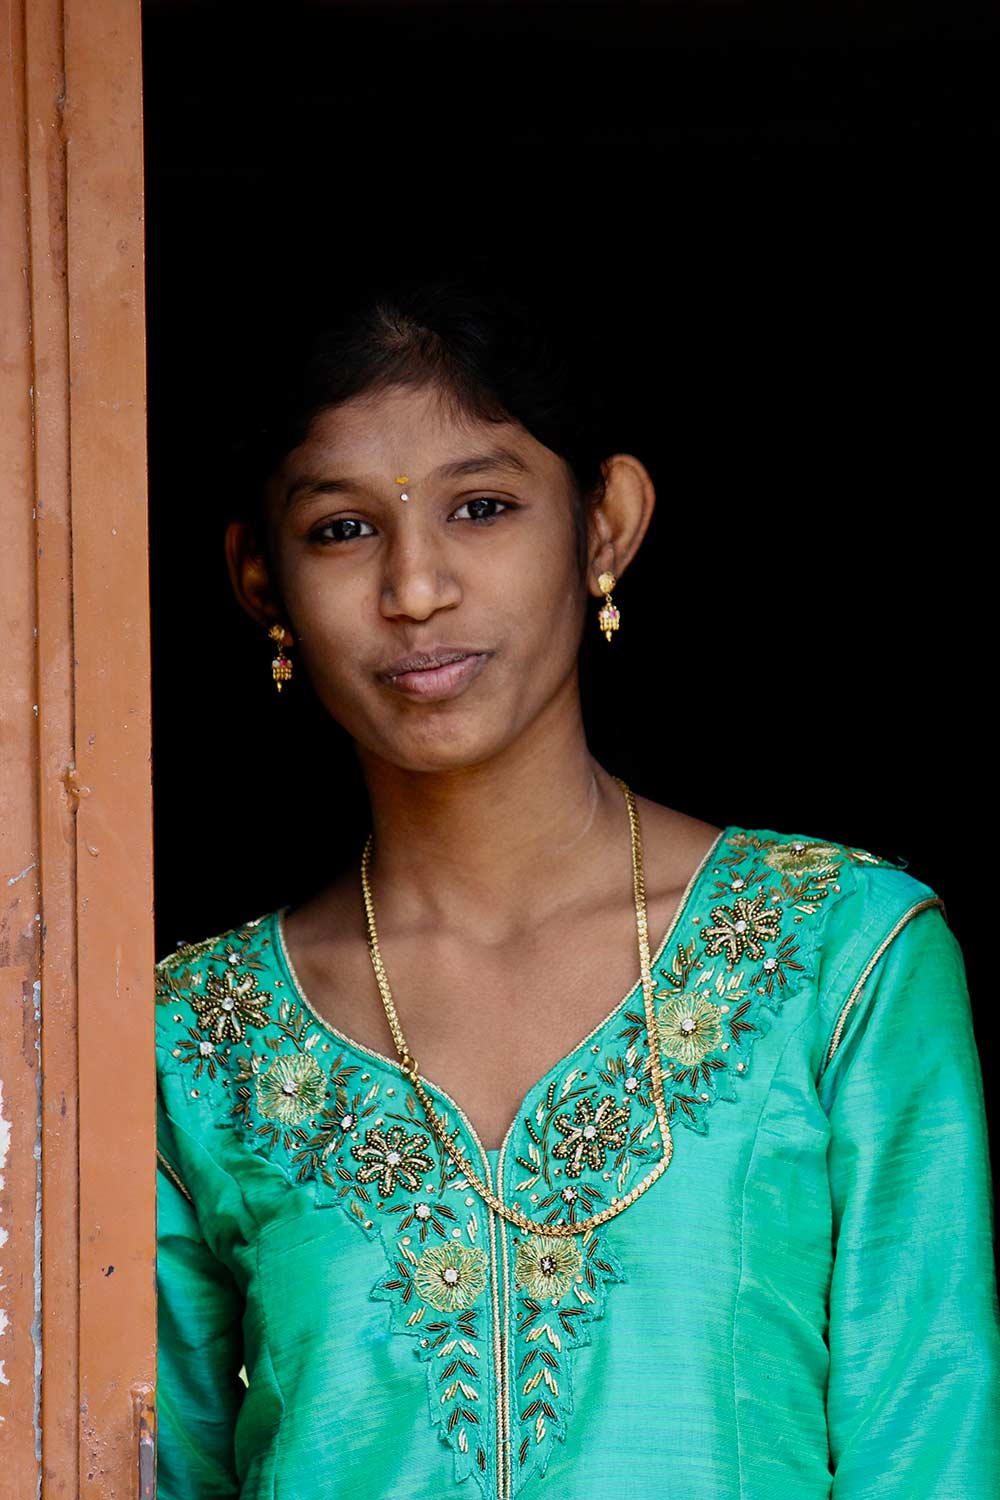 A girl at the Pongal Festival India